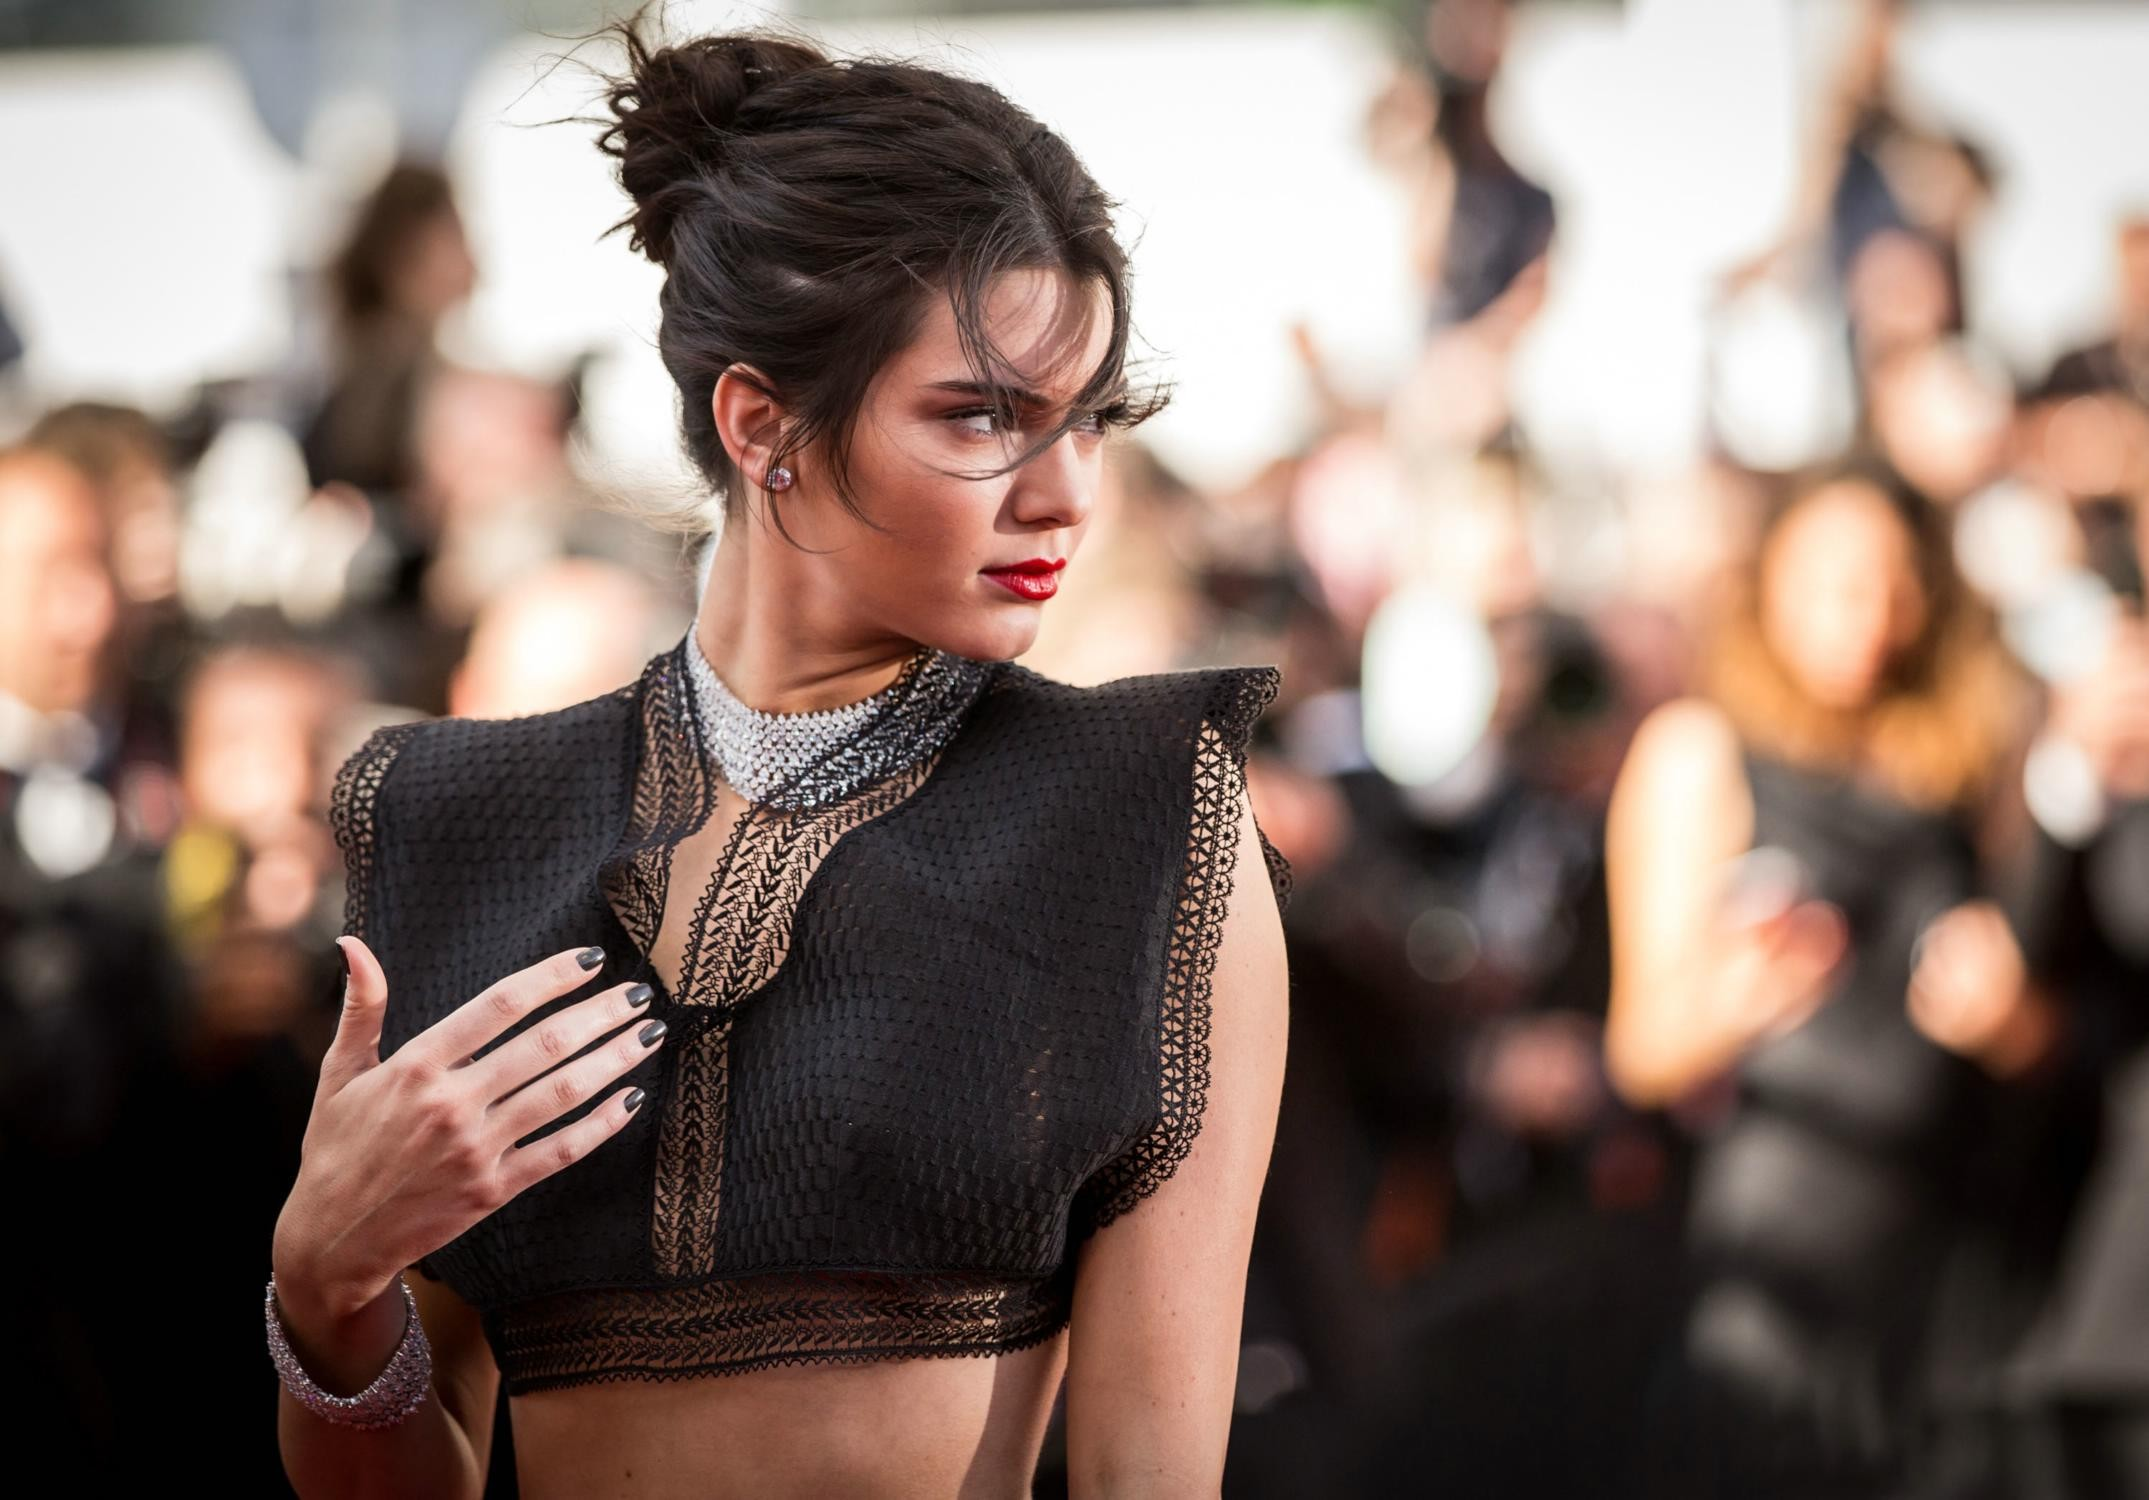 Kendall Jenner Wallpapers Download High Quality HD Images 2149x1500